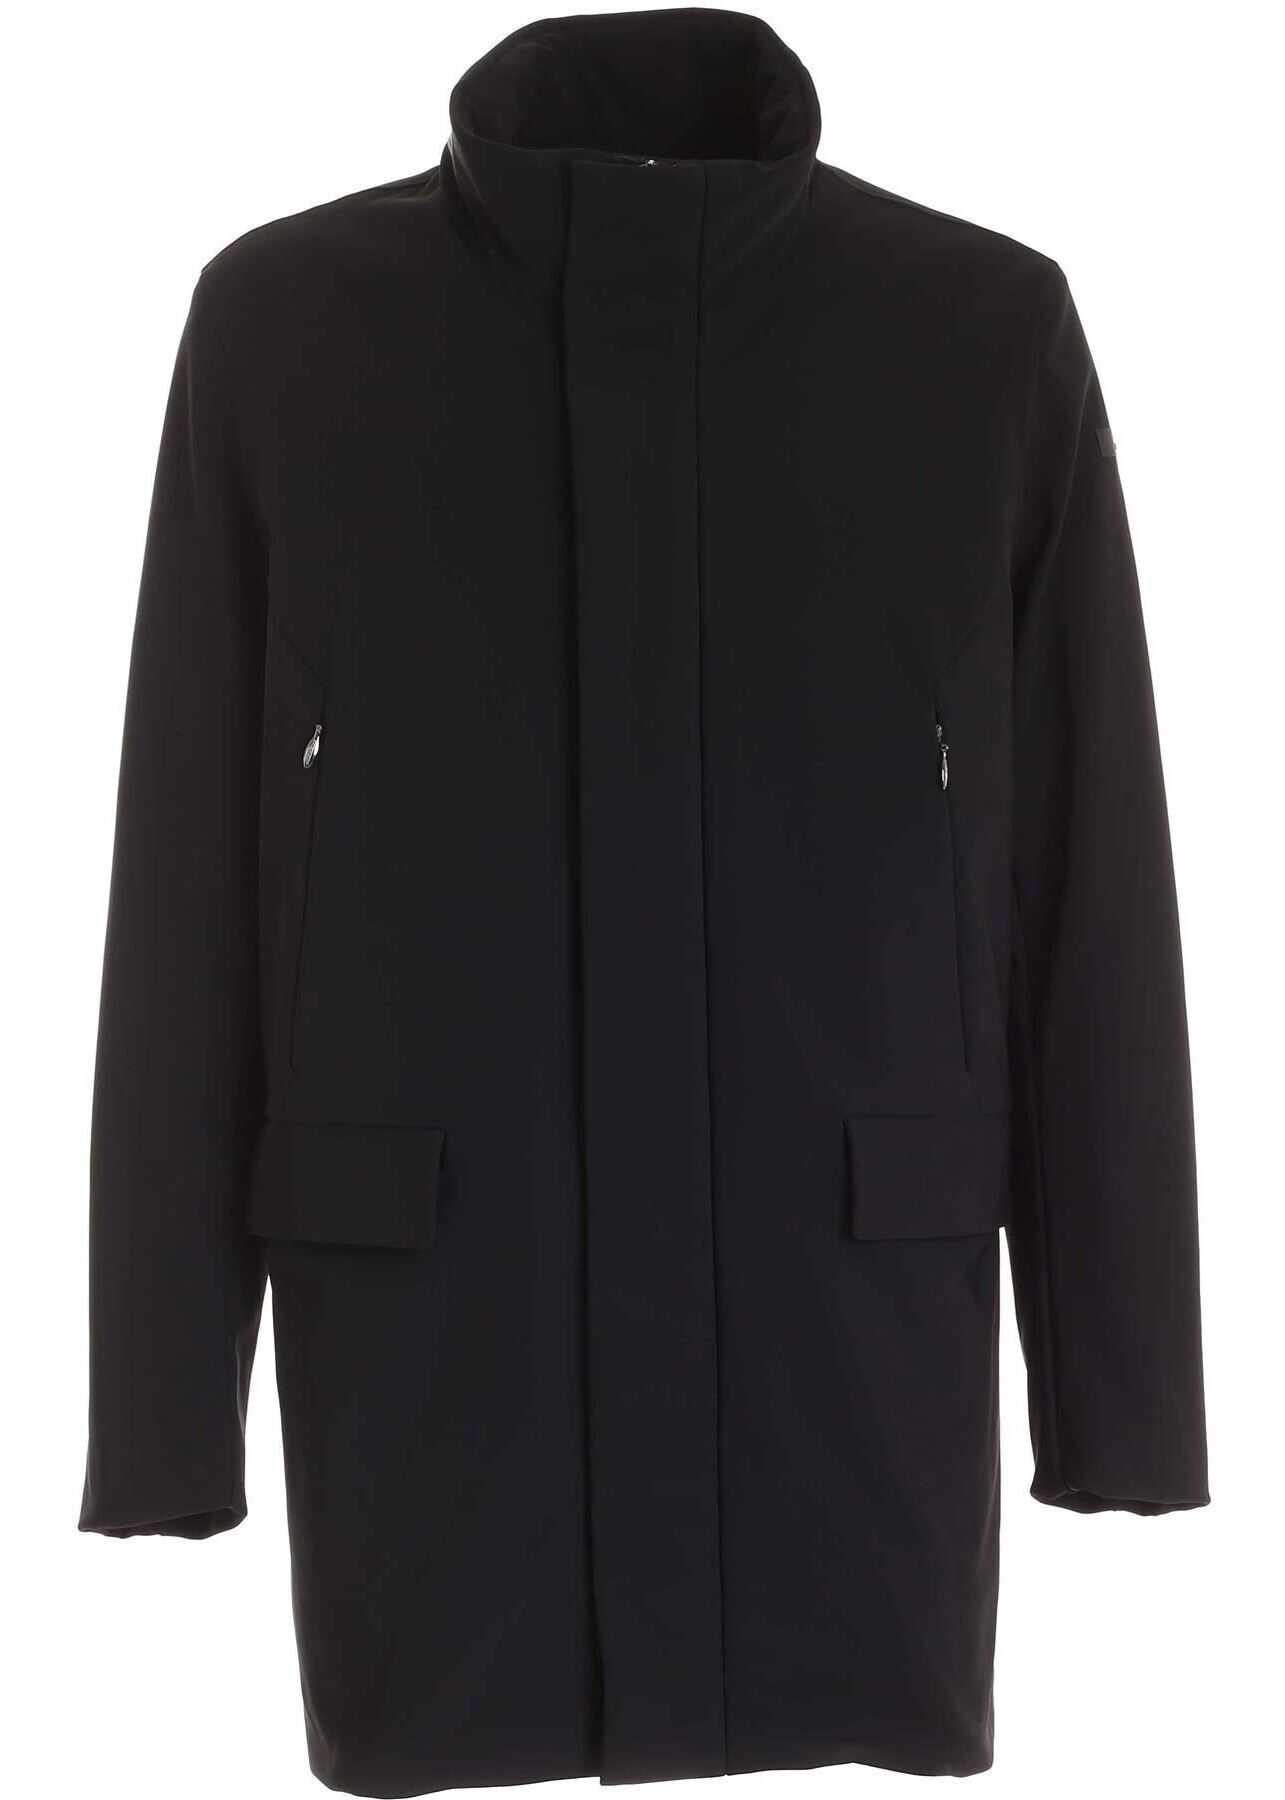 RRD Roberto Ricci Designs Winter Rain Coat In Black Black imagine